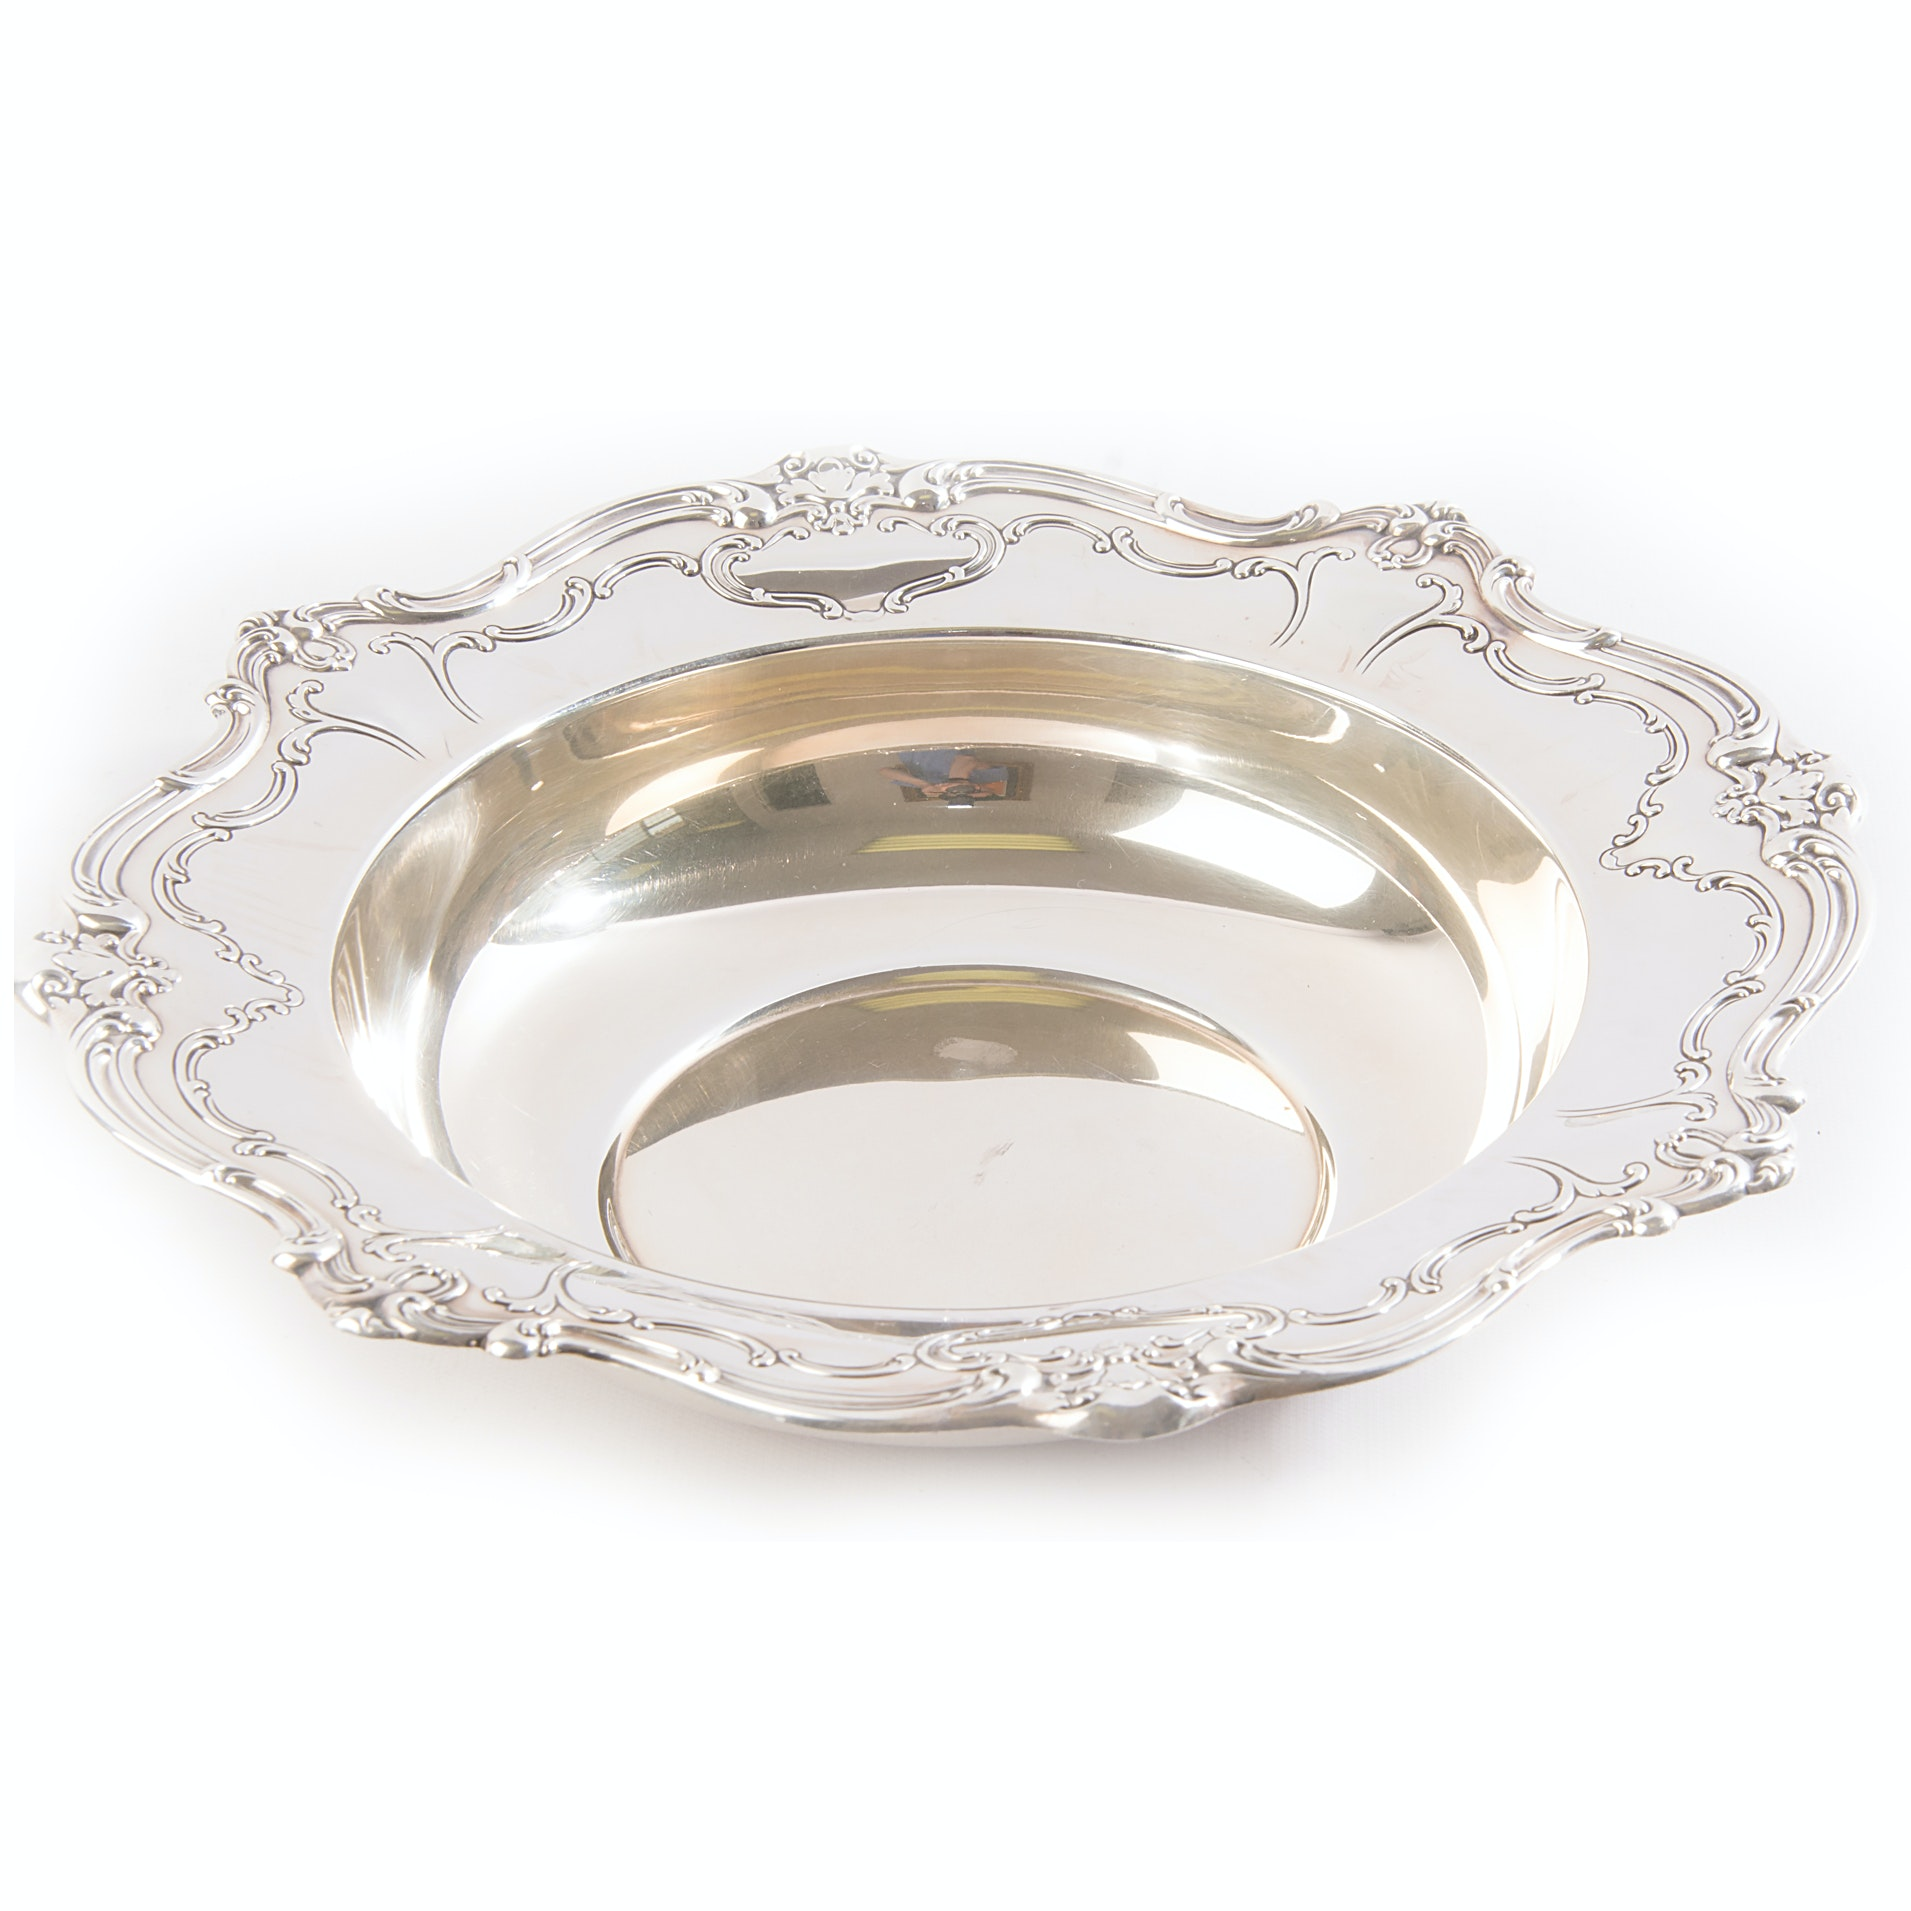 Gorham Sterling Silver Serving Bowl